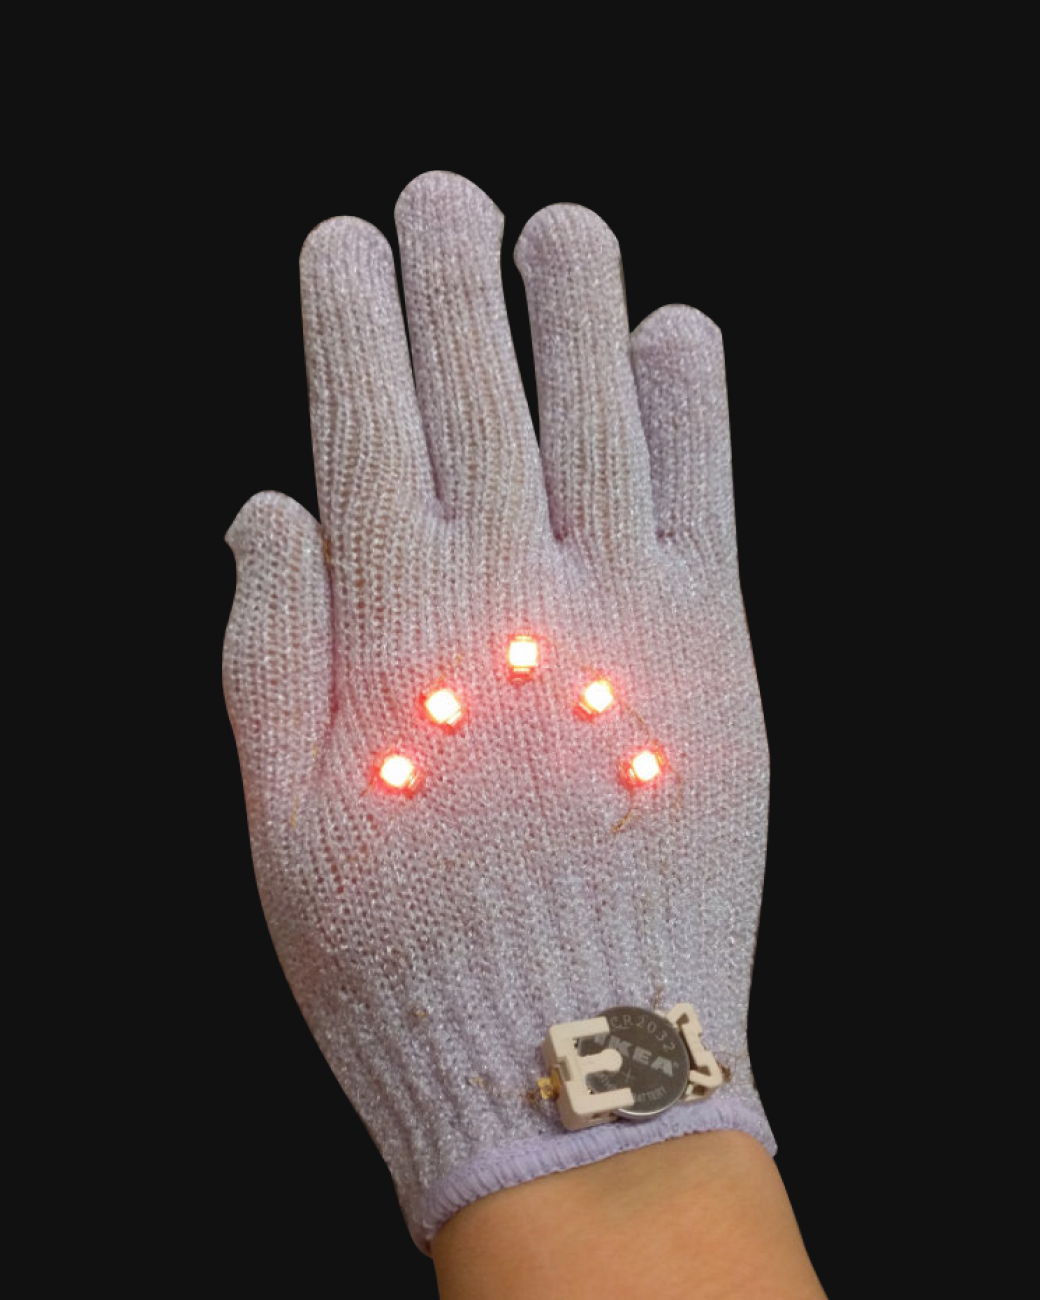 Image of biking gloves.